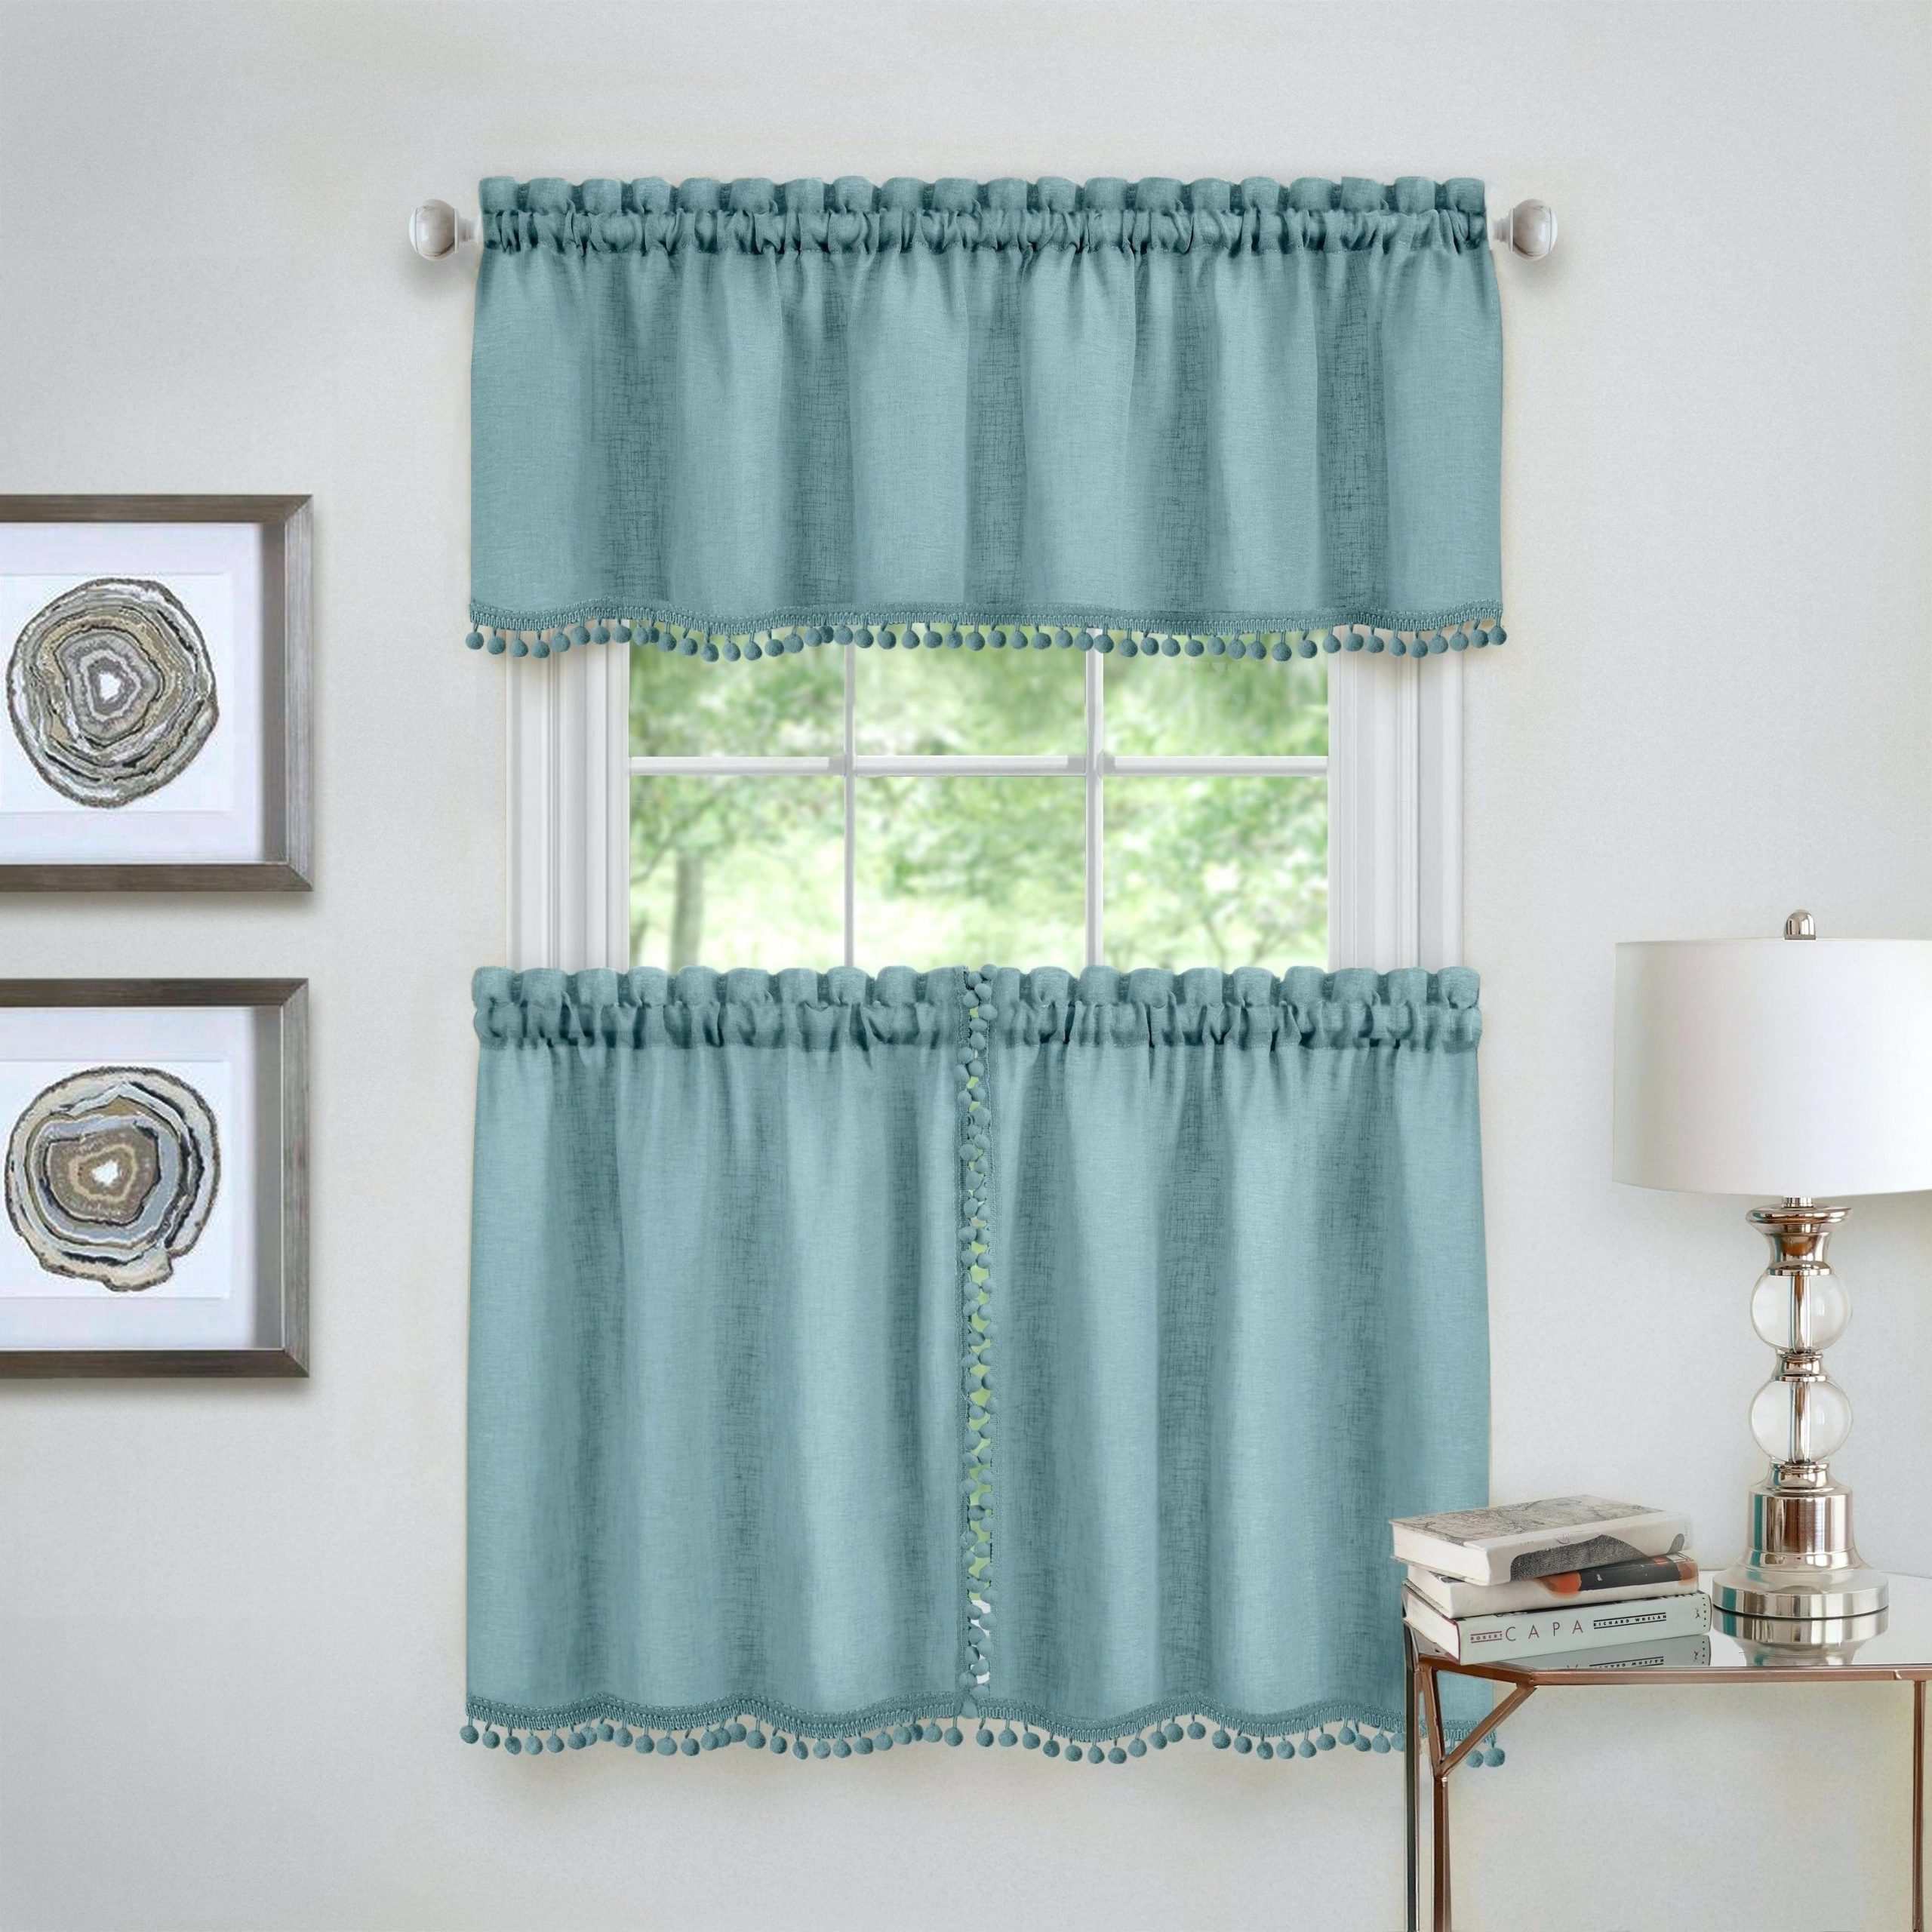 Curtain Sets With Valance – Onsaturn (View 9 of 20)